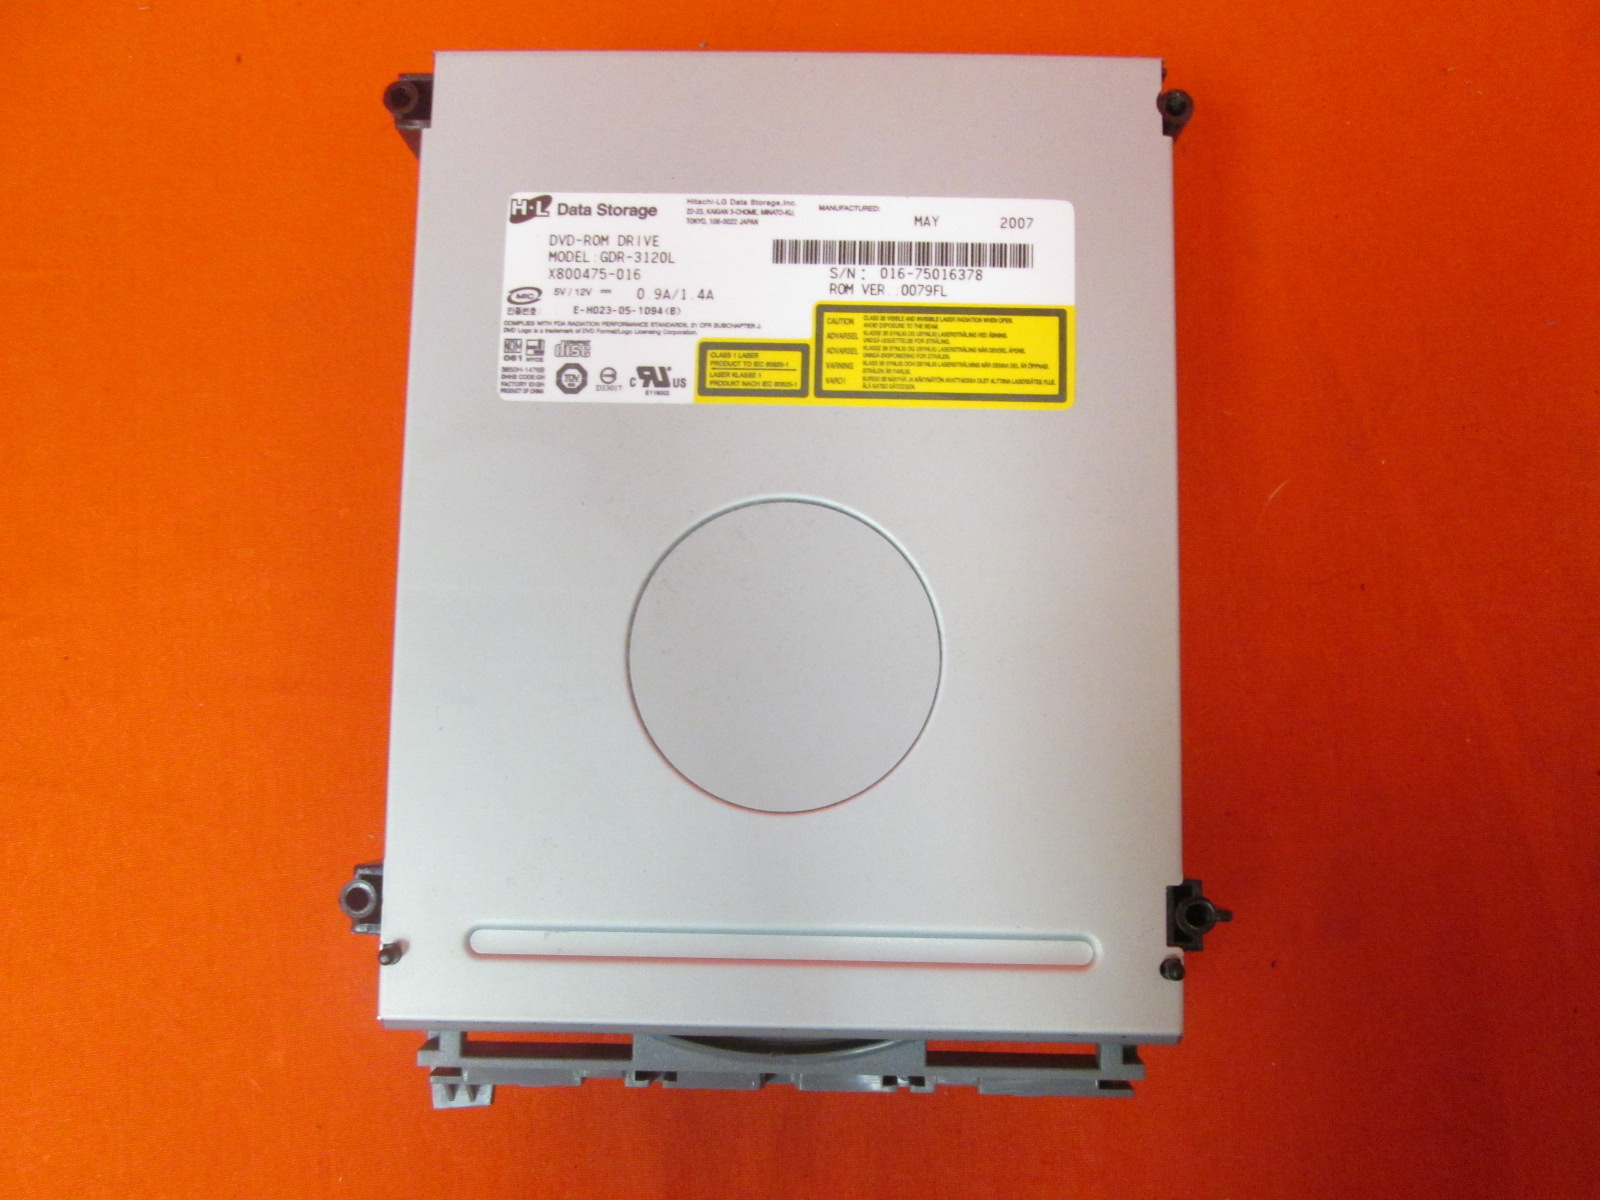 Microsoft OEM Replacement Drive For Xbox 360 Model GDR-3120L